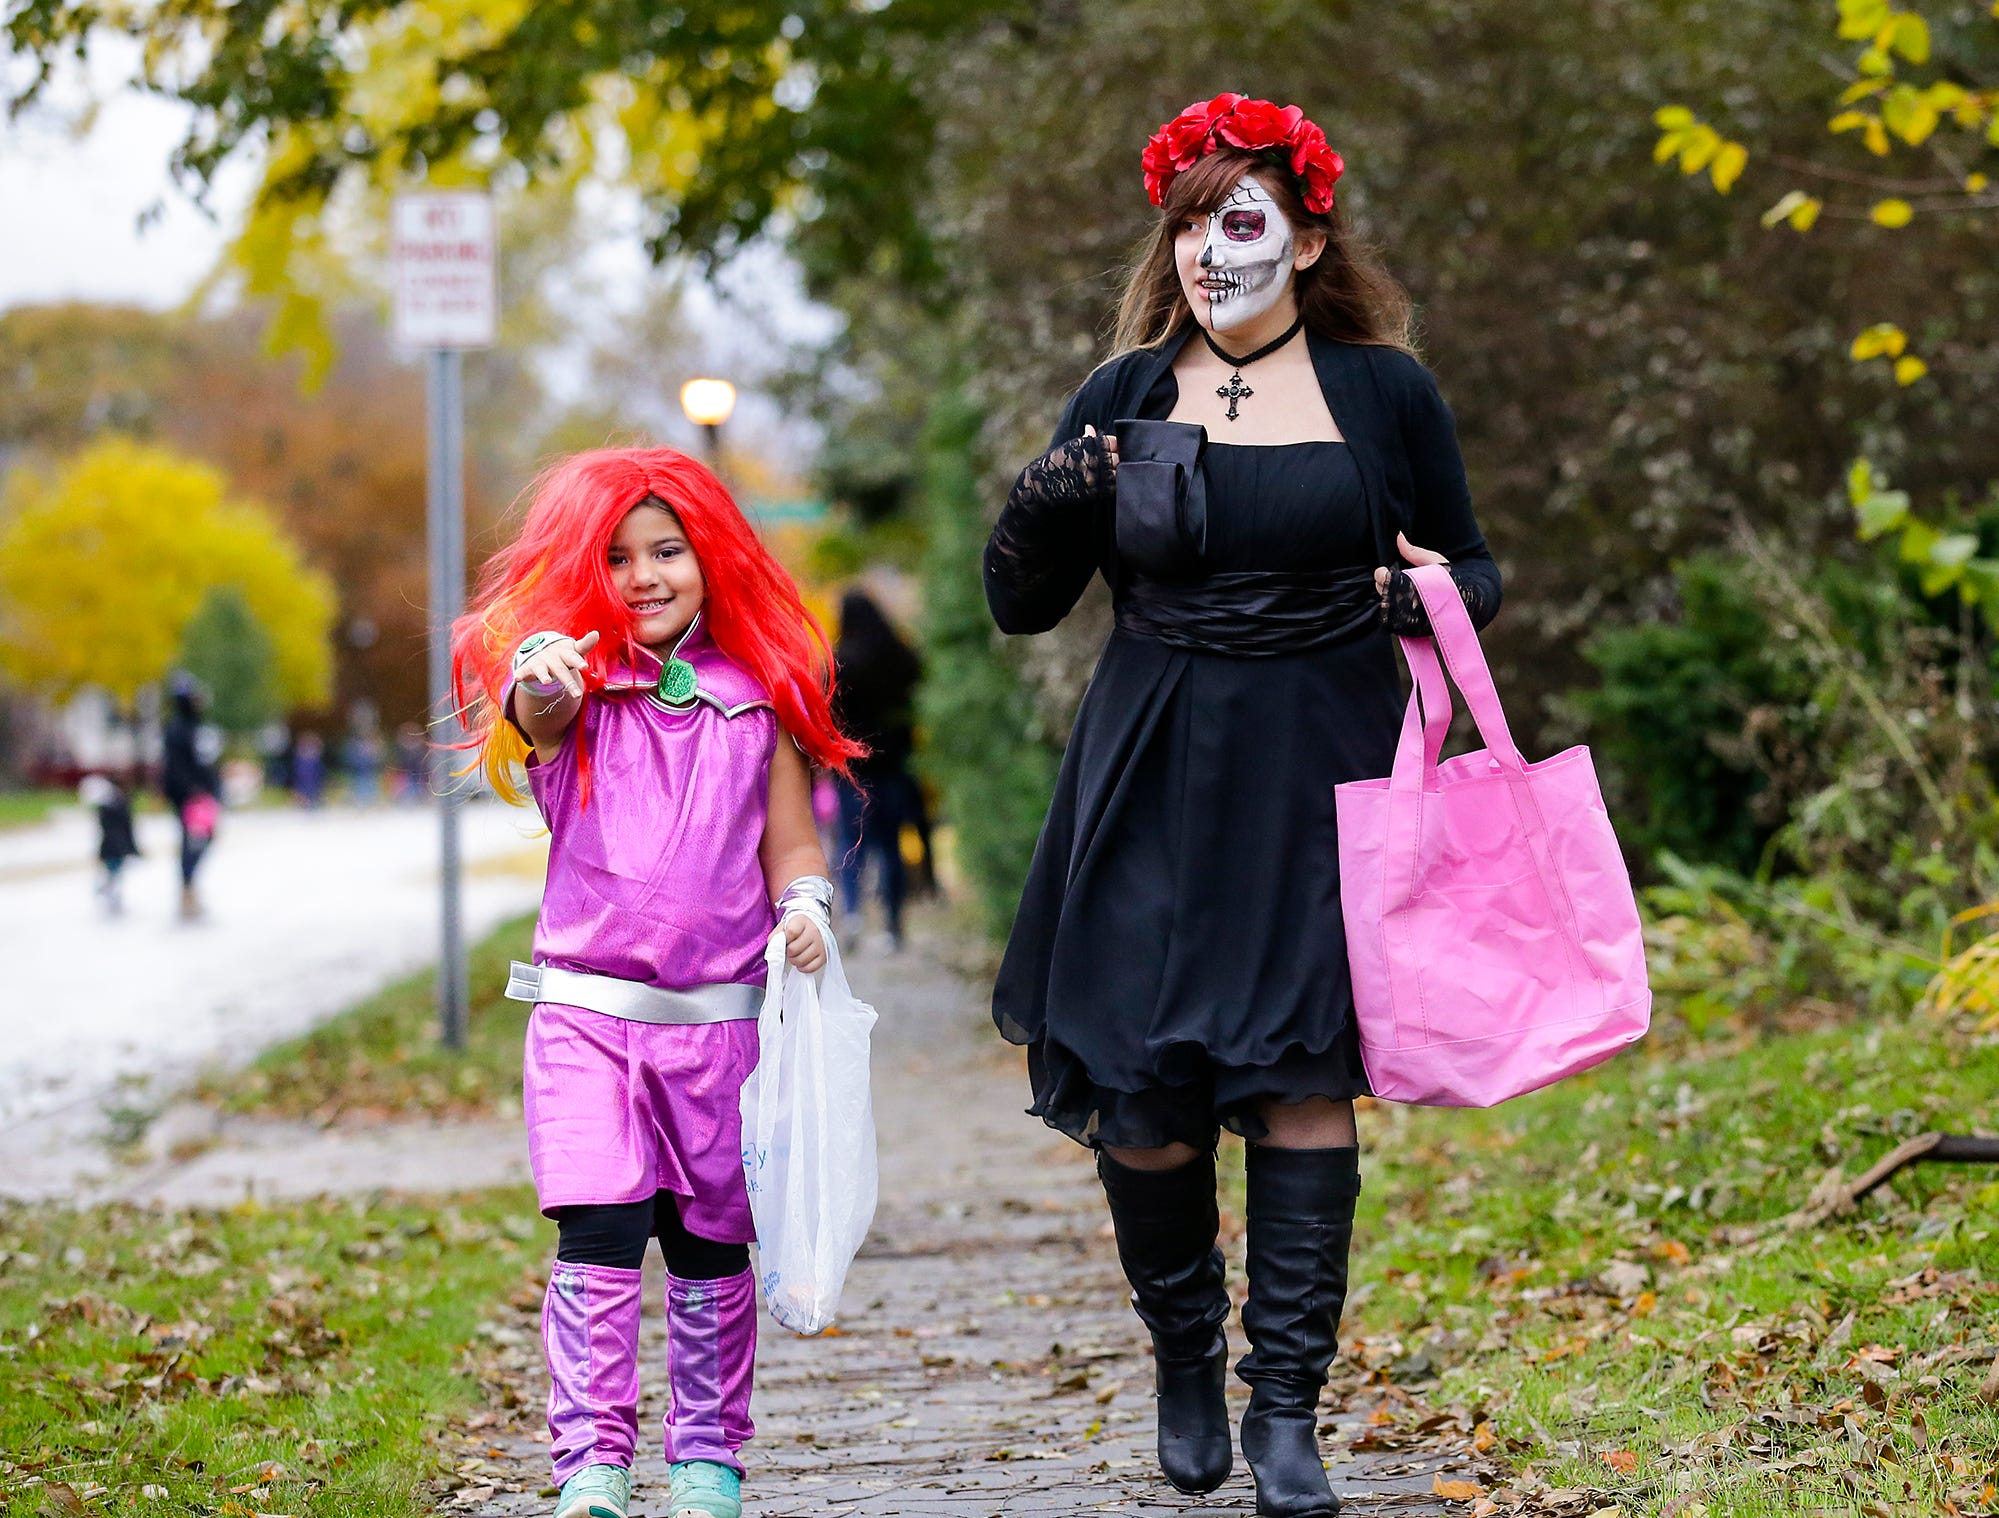 Yesenia Arriaga and Brooke Waterman of Fond du Lac were out trick or treating Sunday, October 28, 2018 in Fond du Lac, Wisconsin. Doug Raflik/USA TODAY NETWORK-Wisconsin